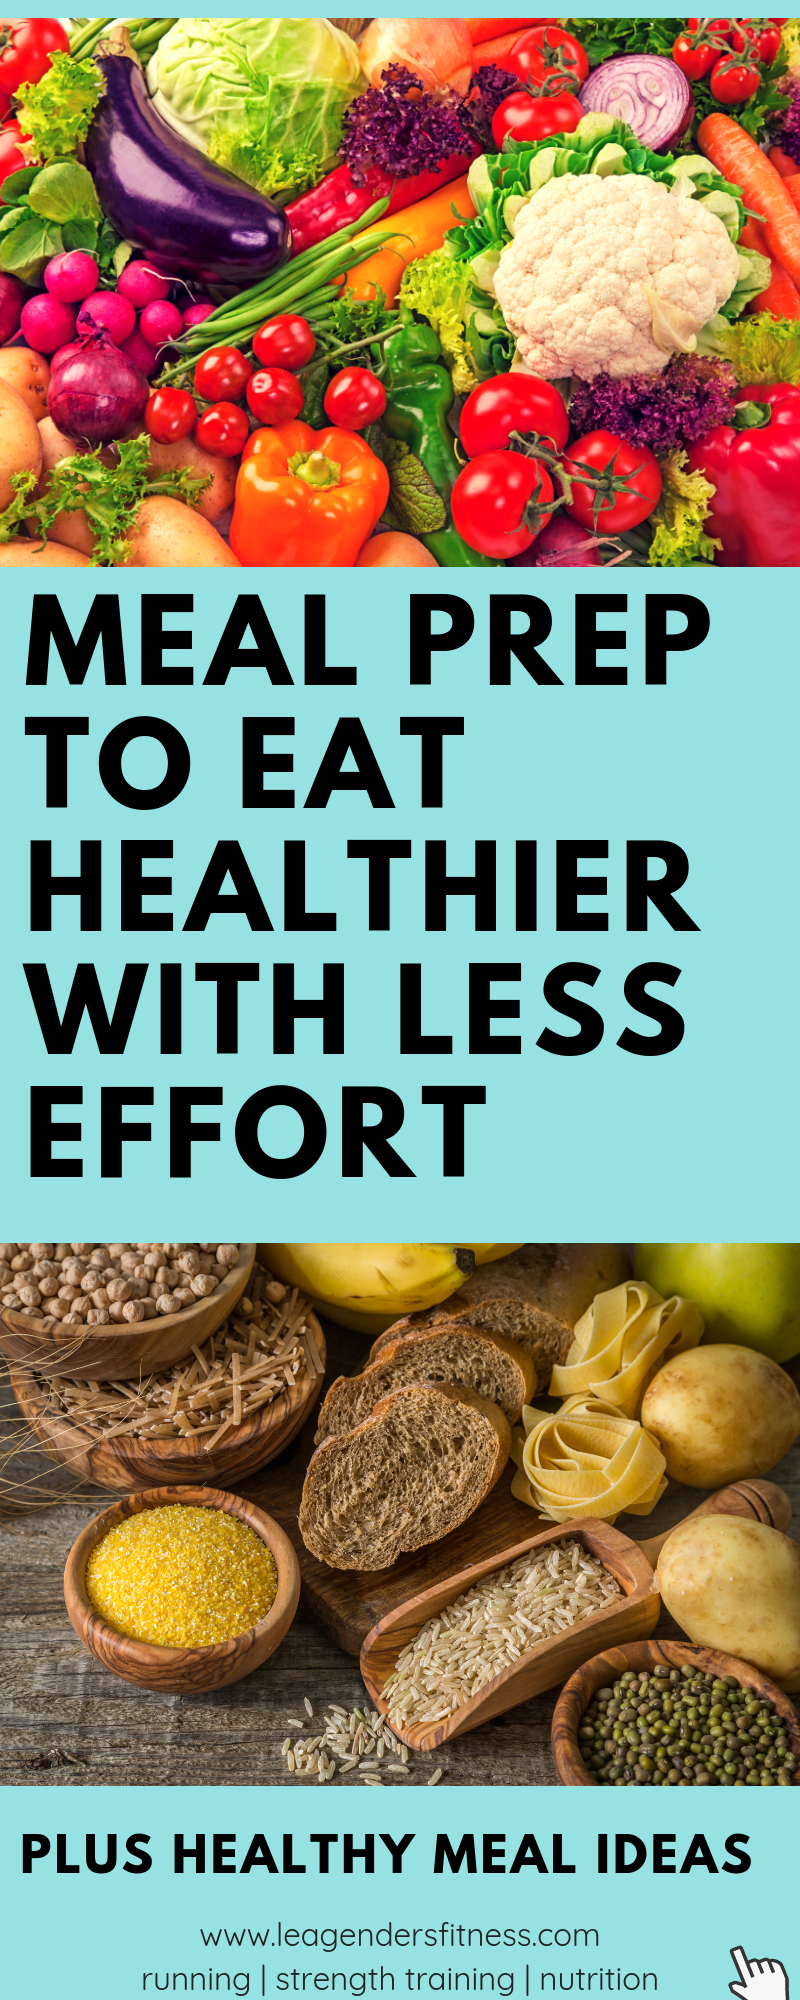 meal prep to eat healthier and save money with less effort. Save to your favorite pinterest board for later.